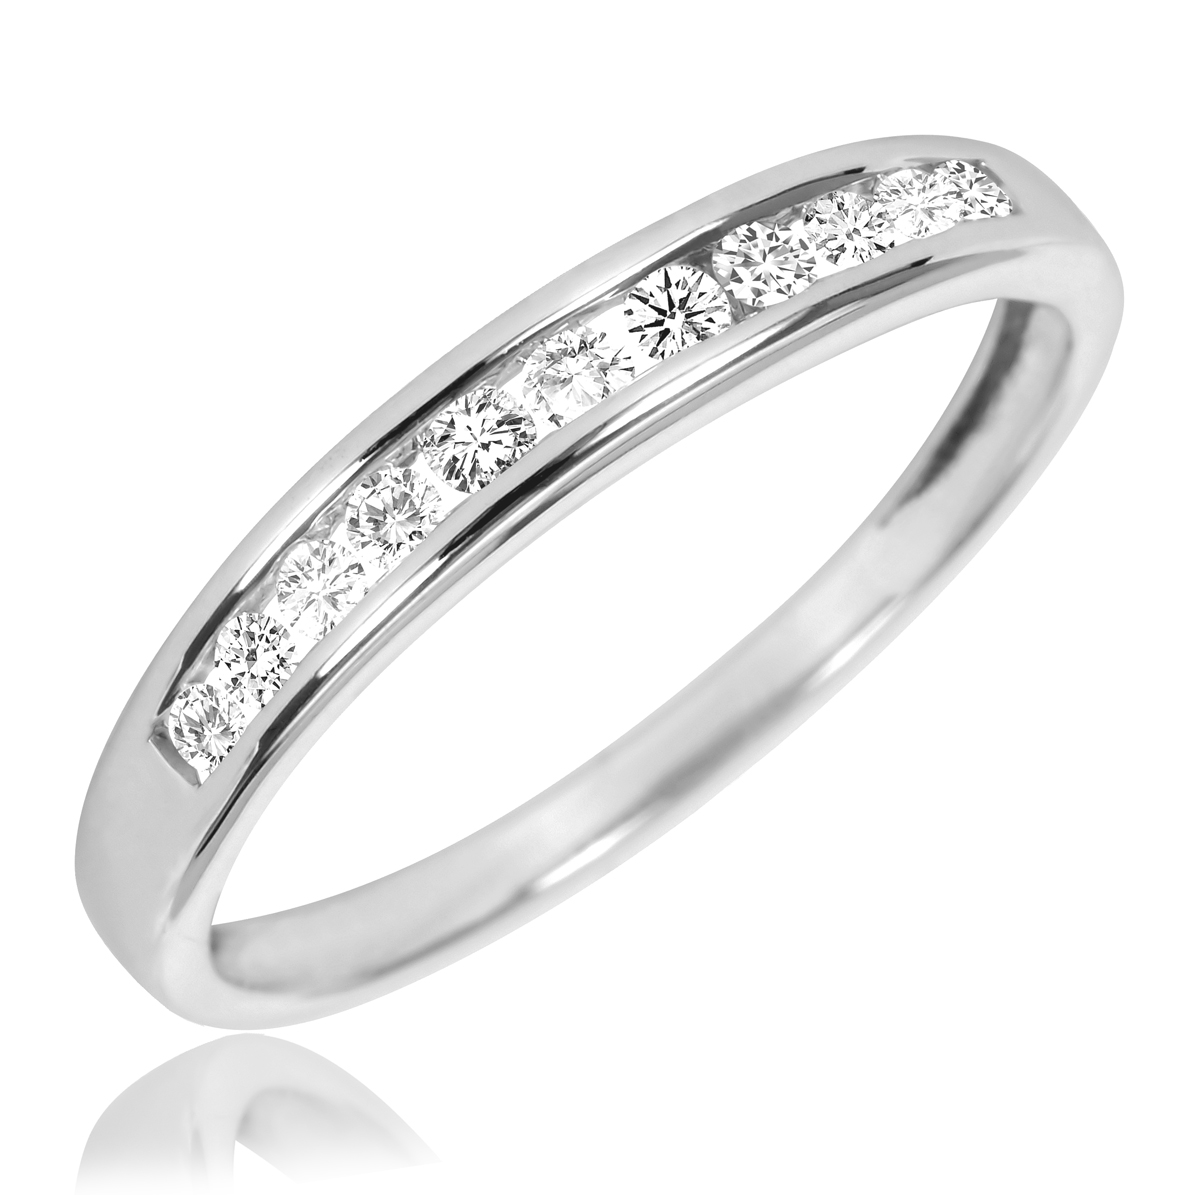 7 8 Carat TW Diamond His And Hers Wedding Rings 10K White Gold